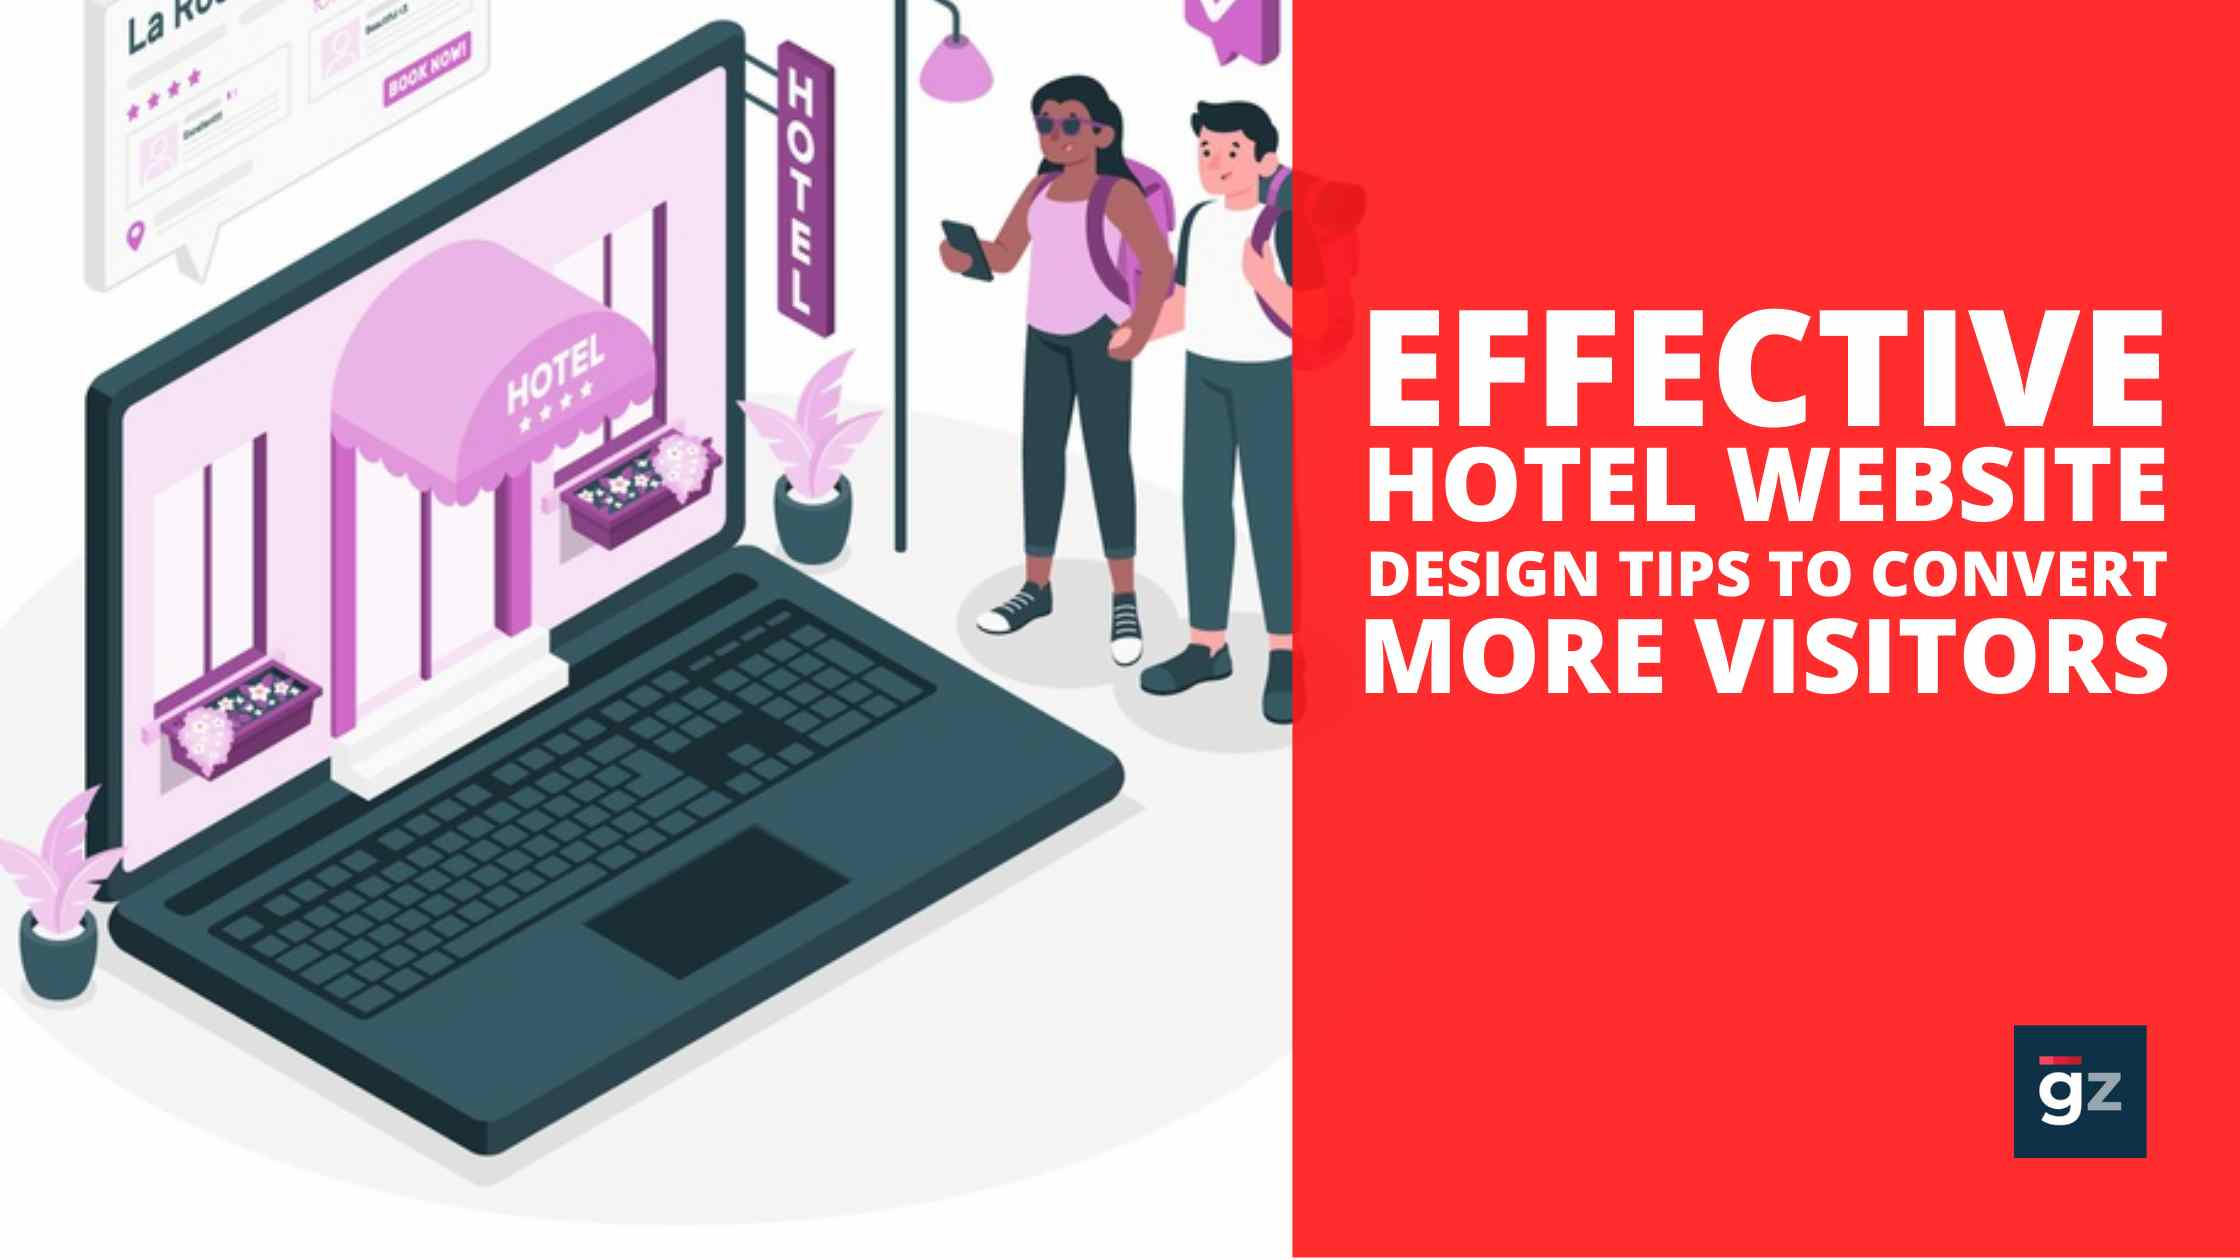 Effective Hotel Website Design Tips To Convert More Visitors